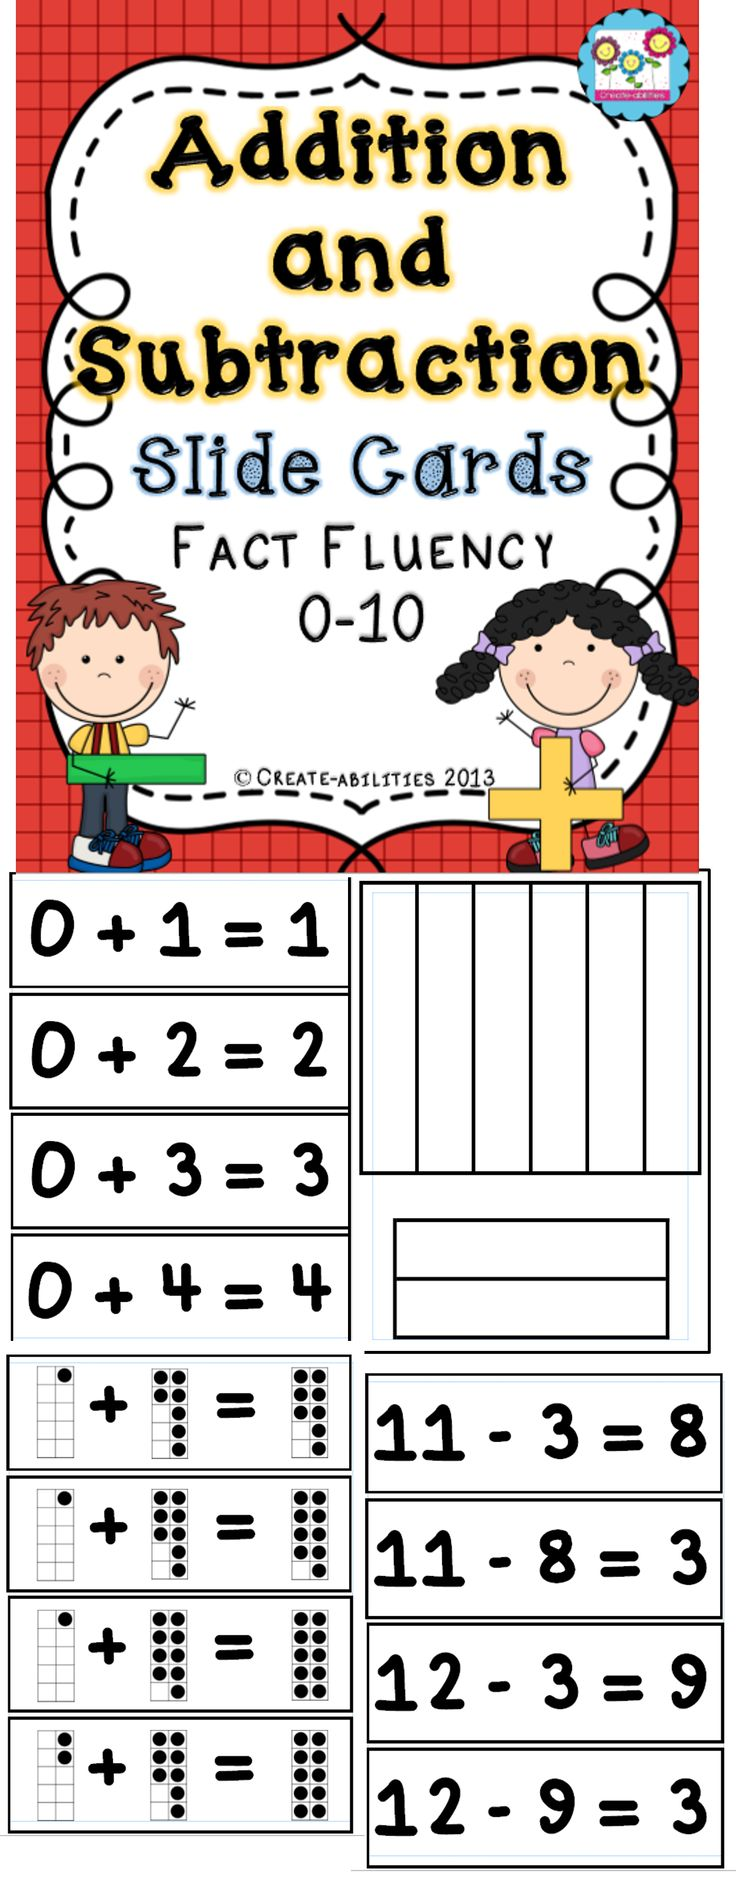 Addition clipart fact fluency.  best math images